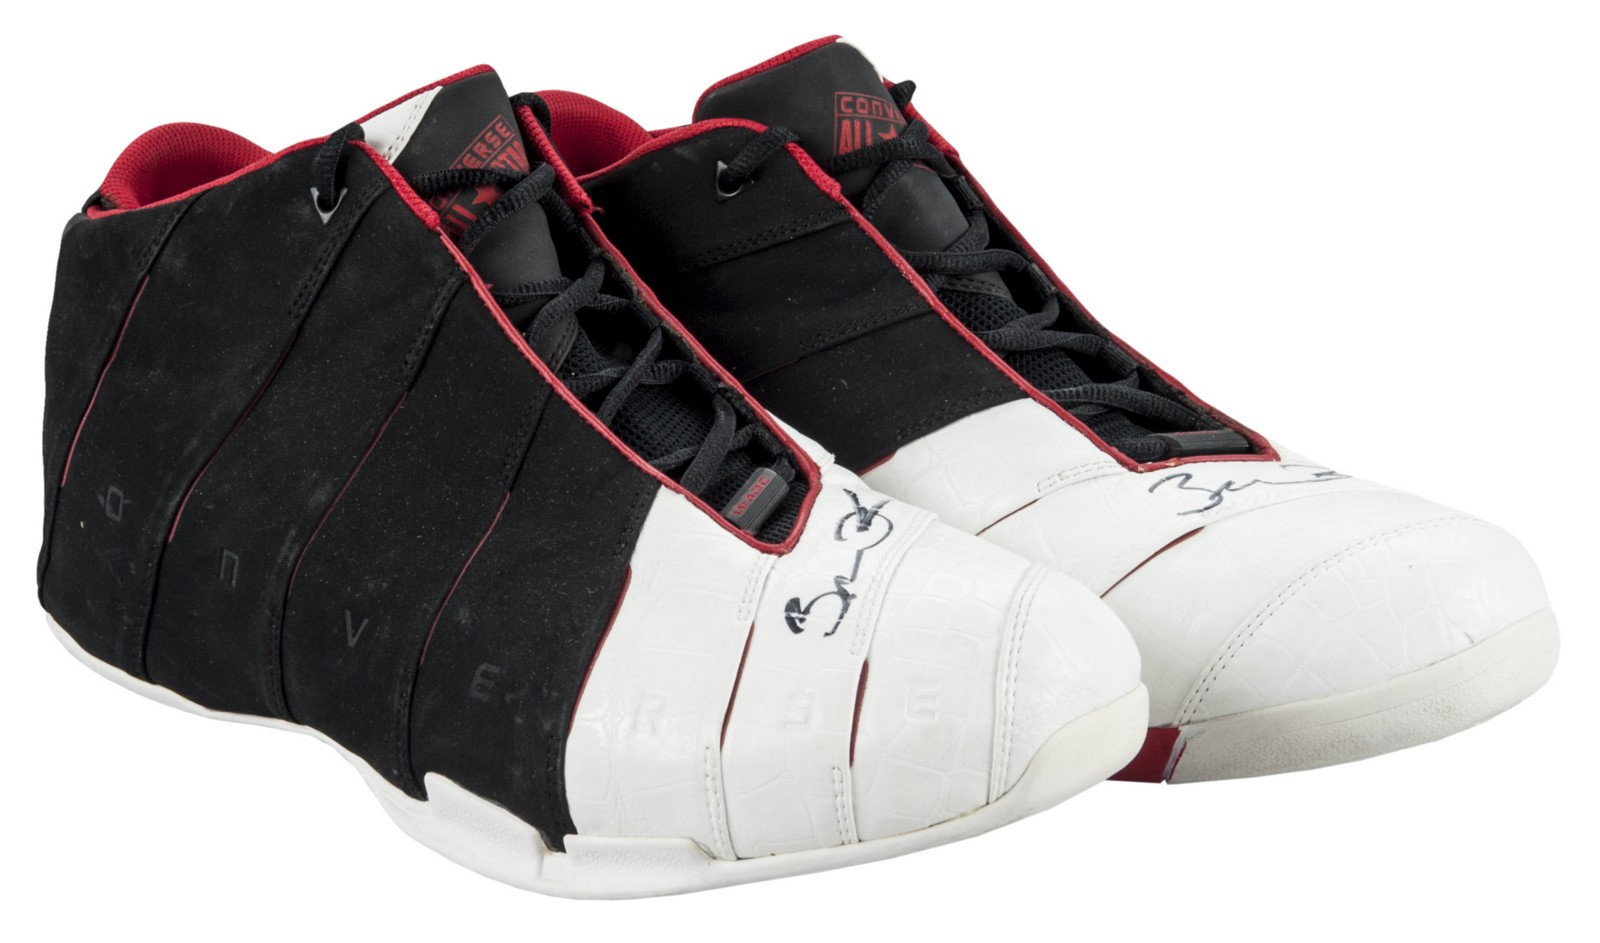 3340bebdbcba6b It s a shame that one of the top 5 players in the NBA could never get the  signature shoe right in his prime. The DWade Converse era is responsible  for a ...